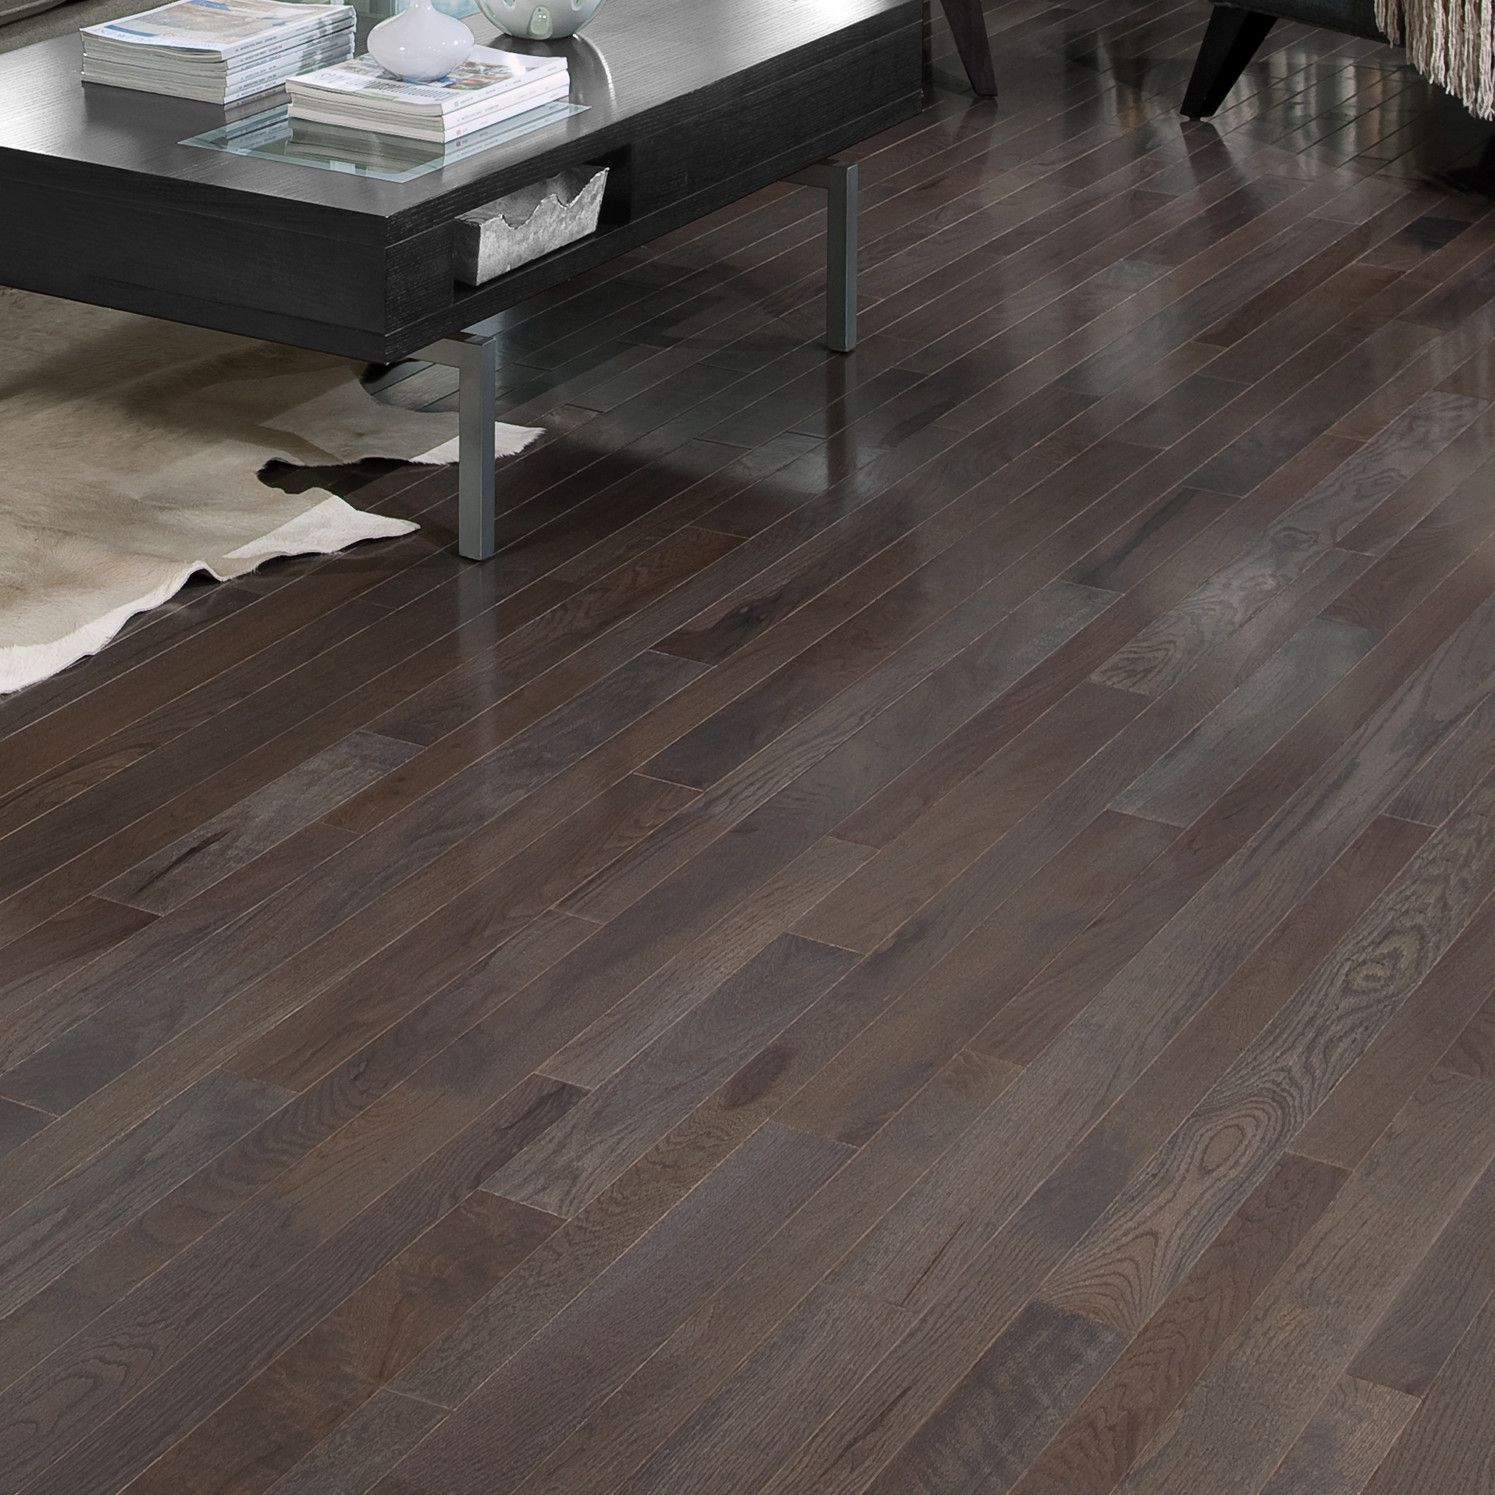 Somerset Floors Homestyle 2 1 4 Quot Solid White Oak Hardwood Flooring In Charcoal White Oak Hardwood Floors Solid Hardwood Floors Oak Hardwood Flooring